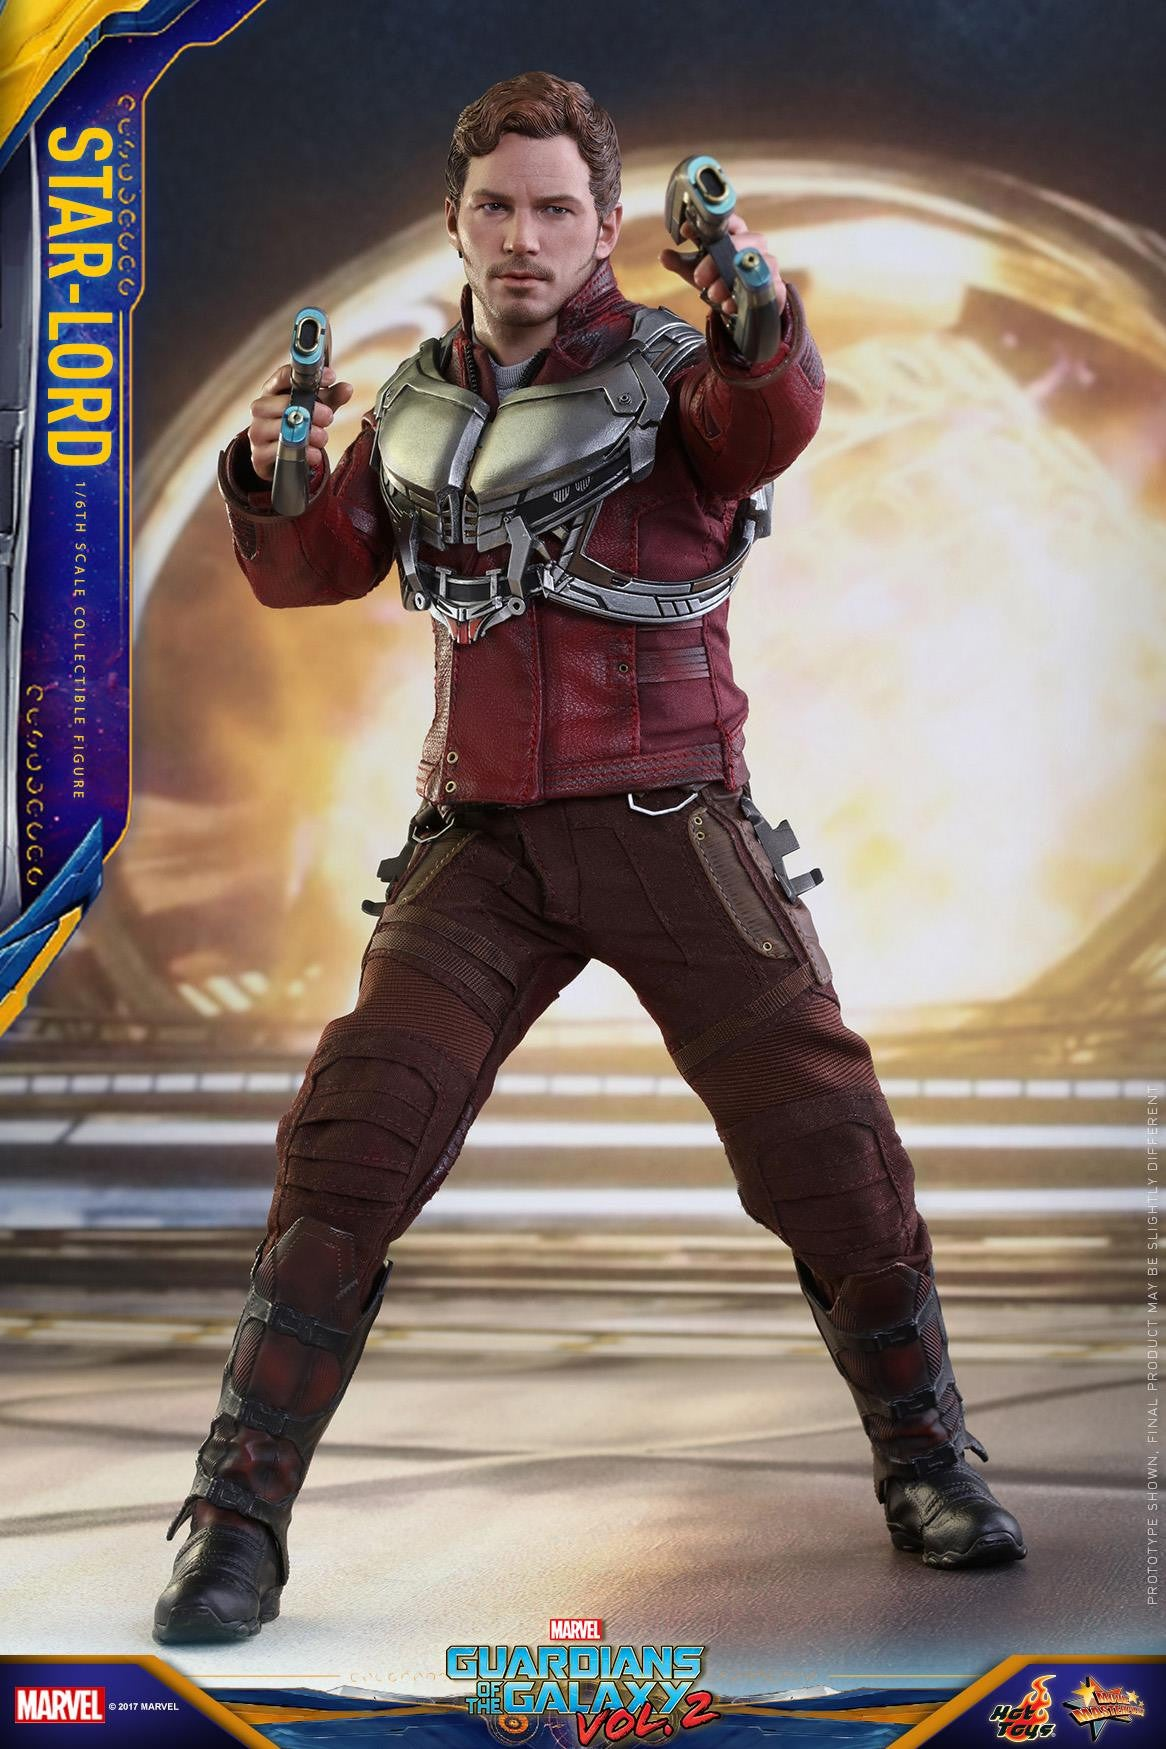 Hot Toys - MMS420 - Guardians of the Galaxy Vol. 2 - Star-Lord